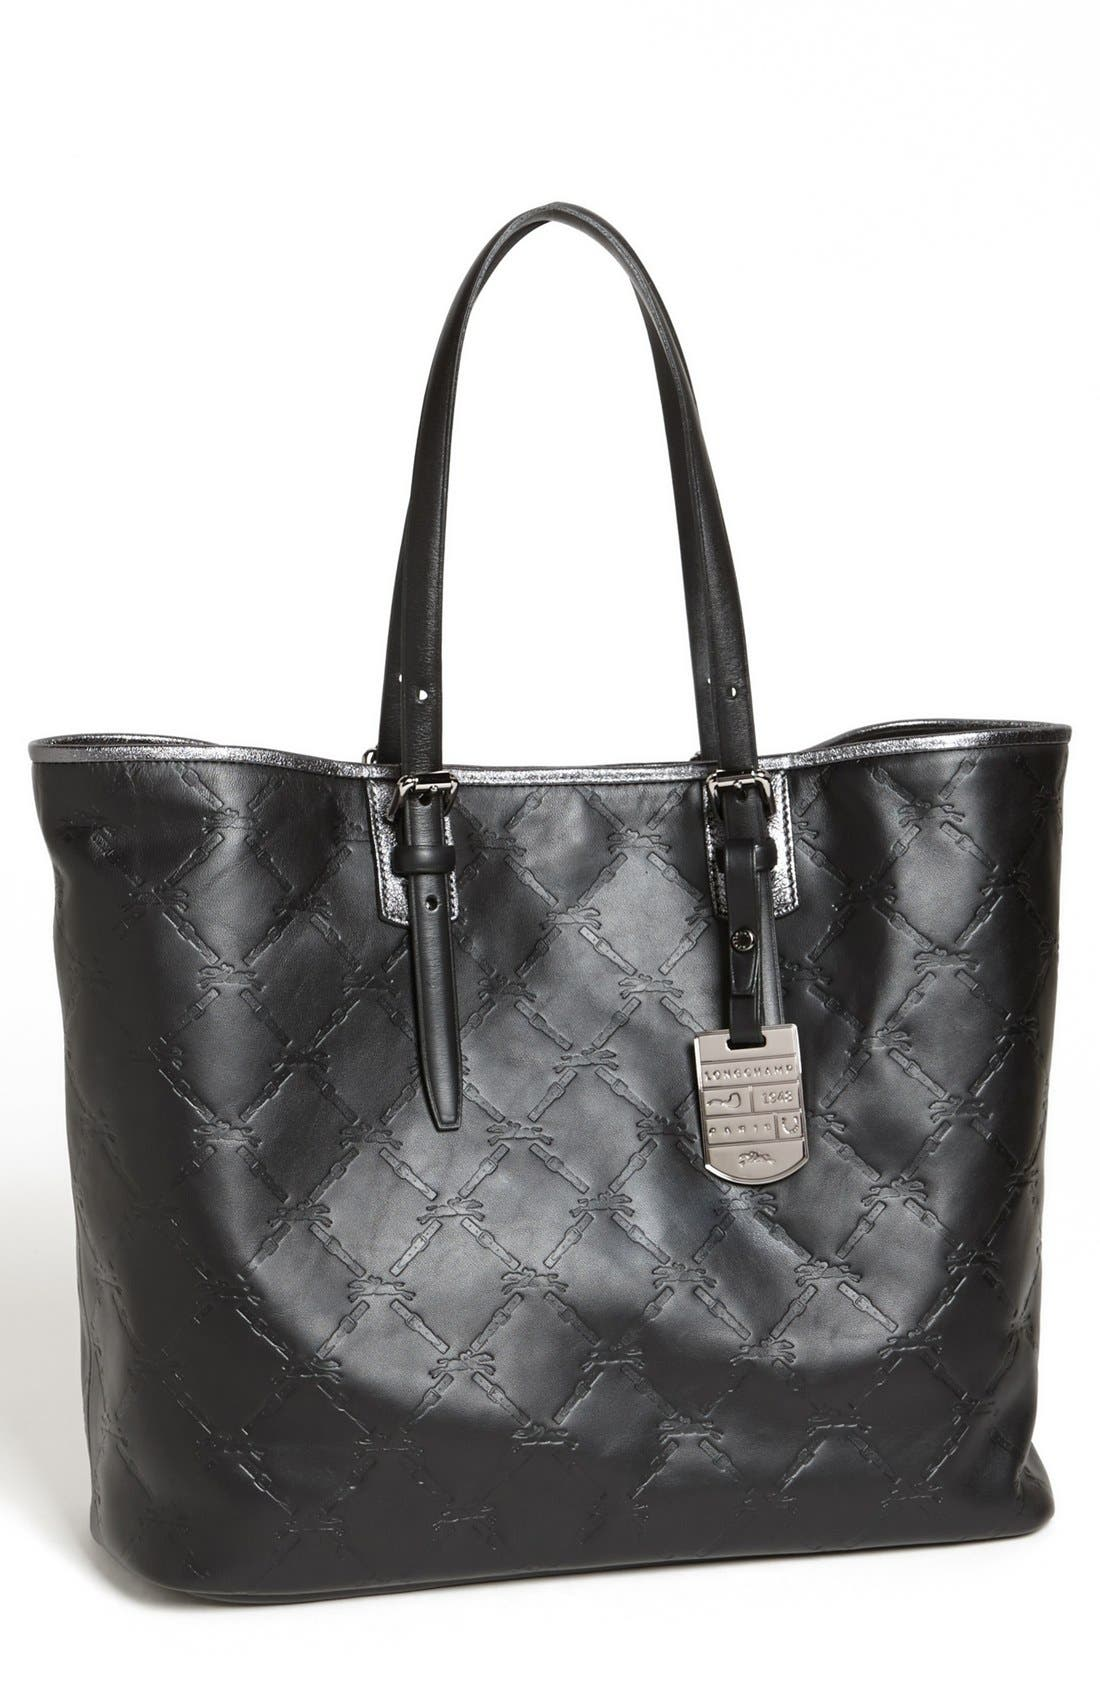 Alternate Image 1 Selected - Longchamp 'LM Cuir - Medium' Leather Tote